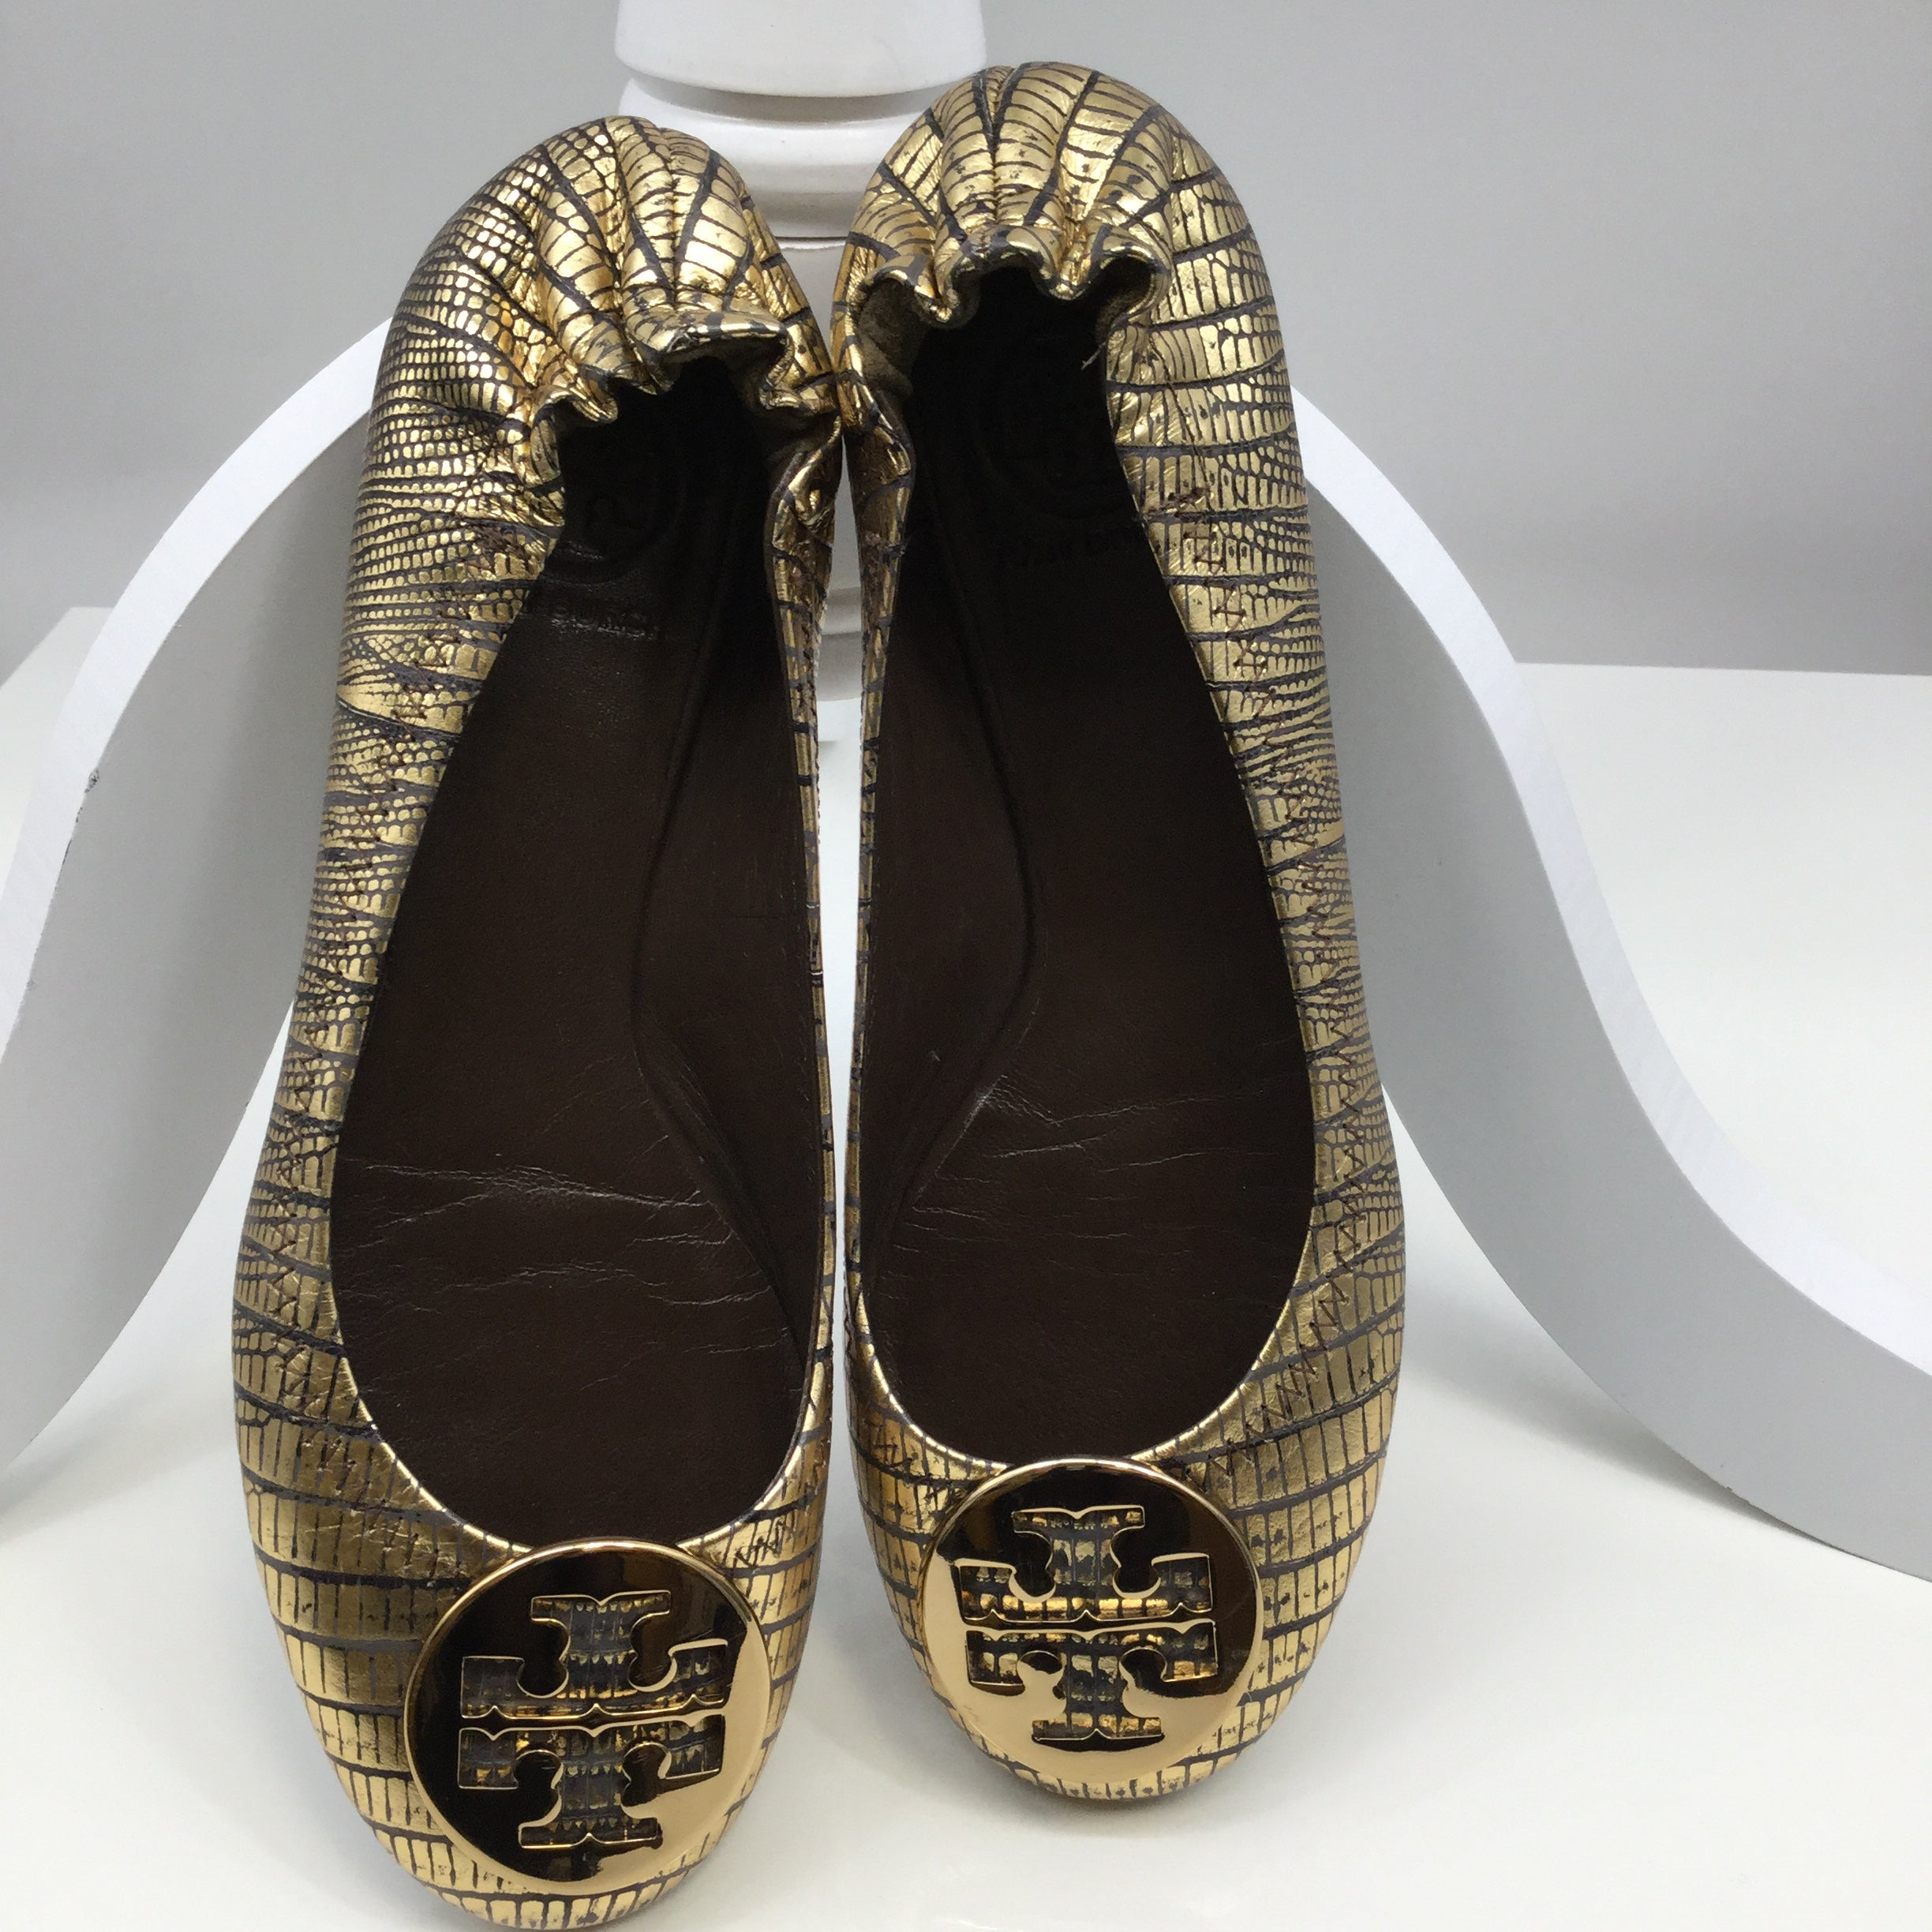 Tory Burch Shoes Flats Size:6.5 - GENTLY WORN TORY BURCH GOLD AND TAUPE FLATS. SIZE 6.5. SNAKESKIN PATTERN.